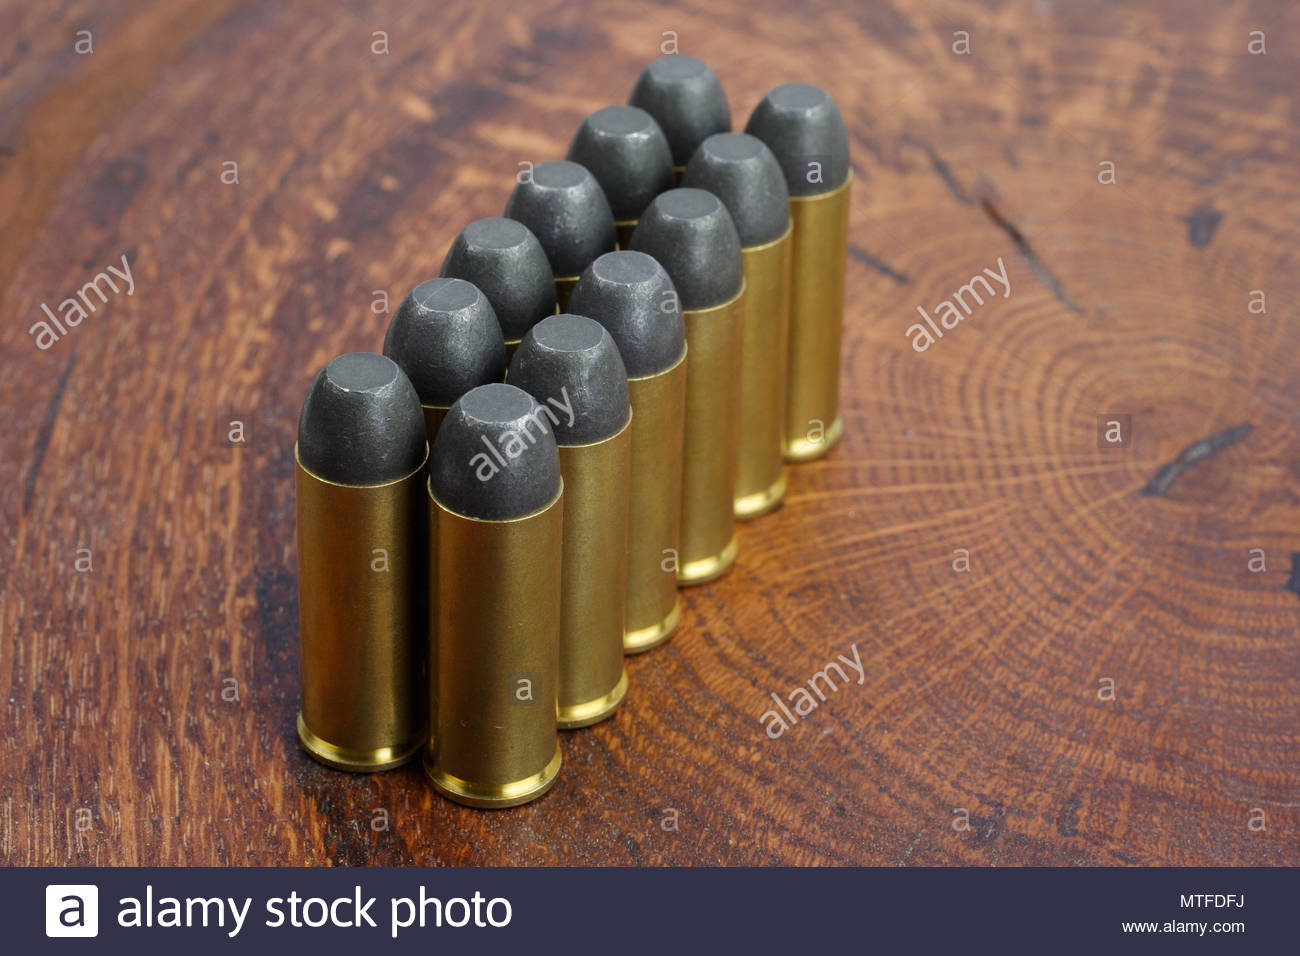 Revolver cartridges 45 Cal Wild West period on wooden background 1300x956